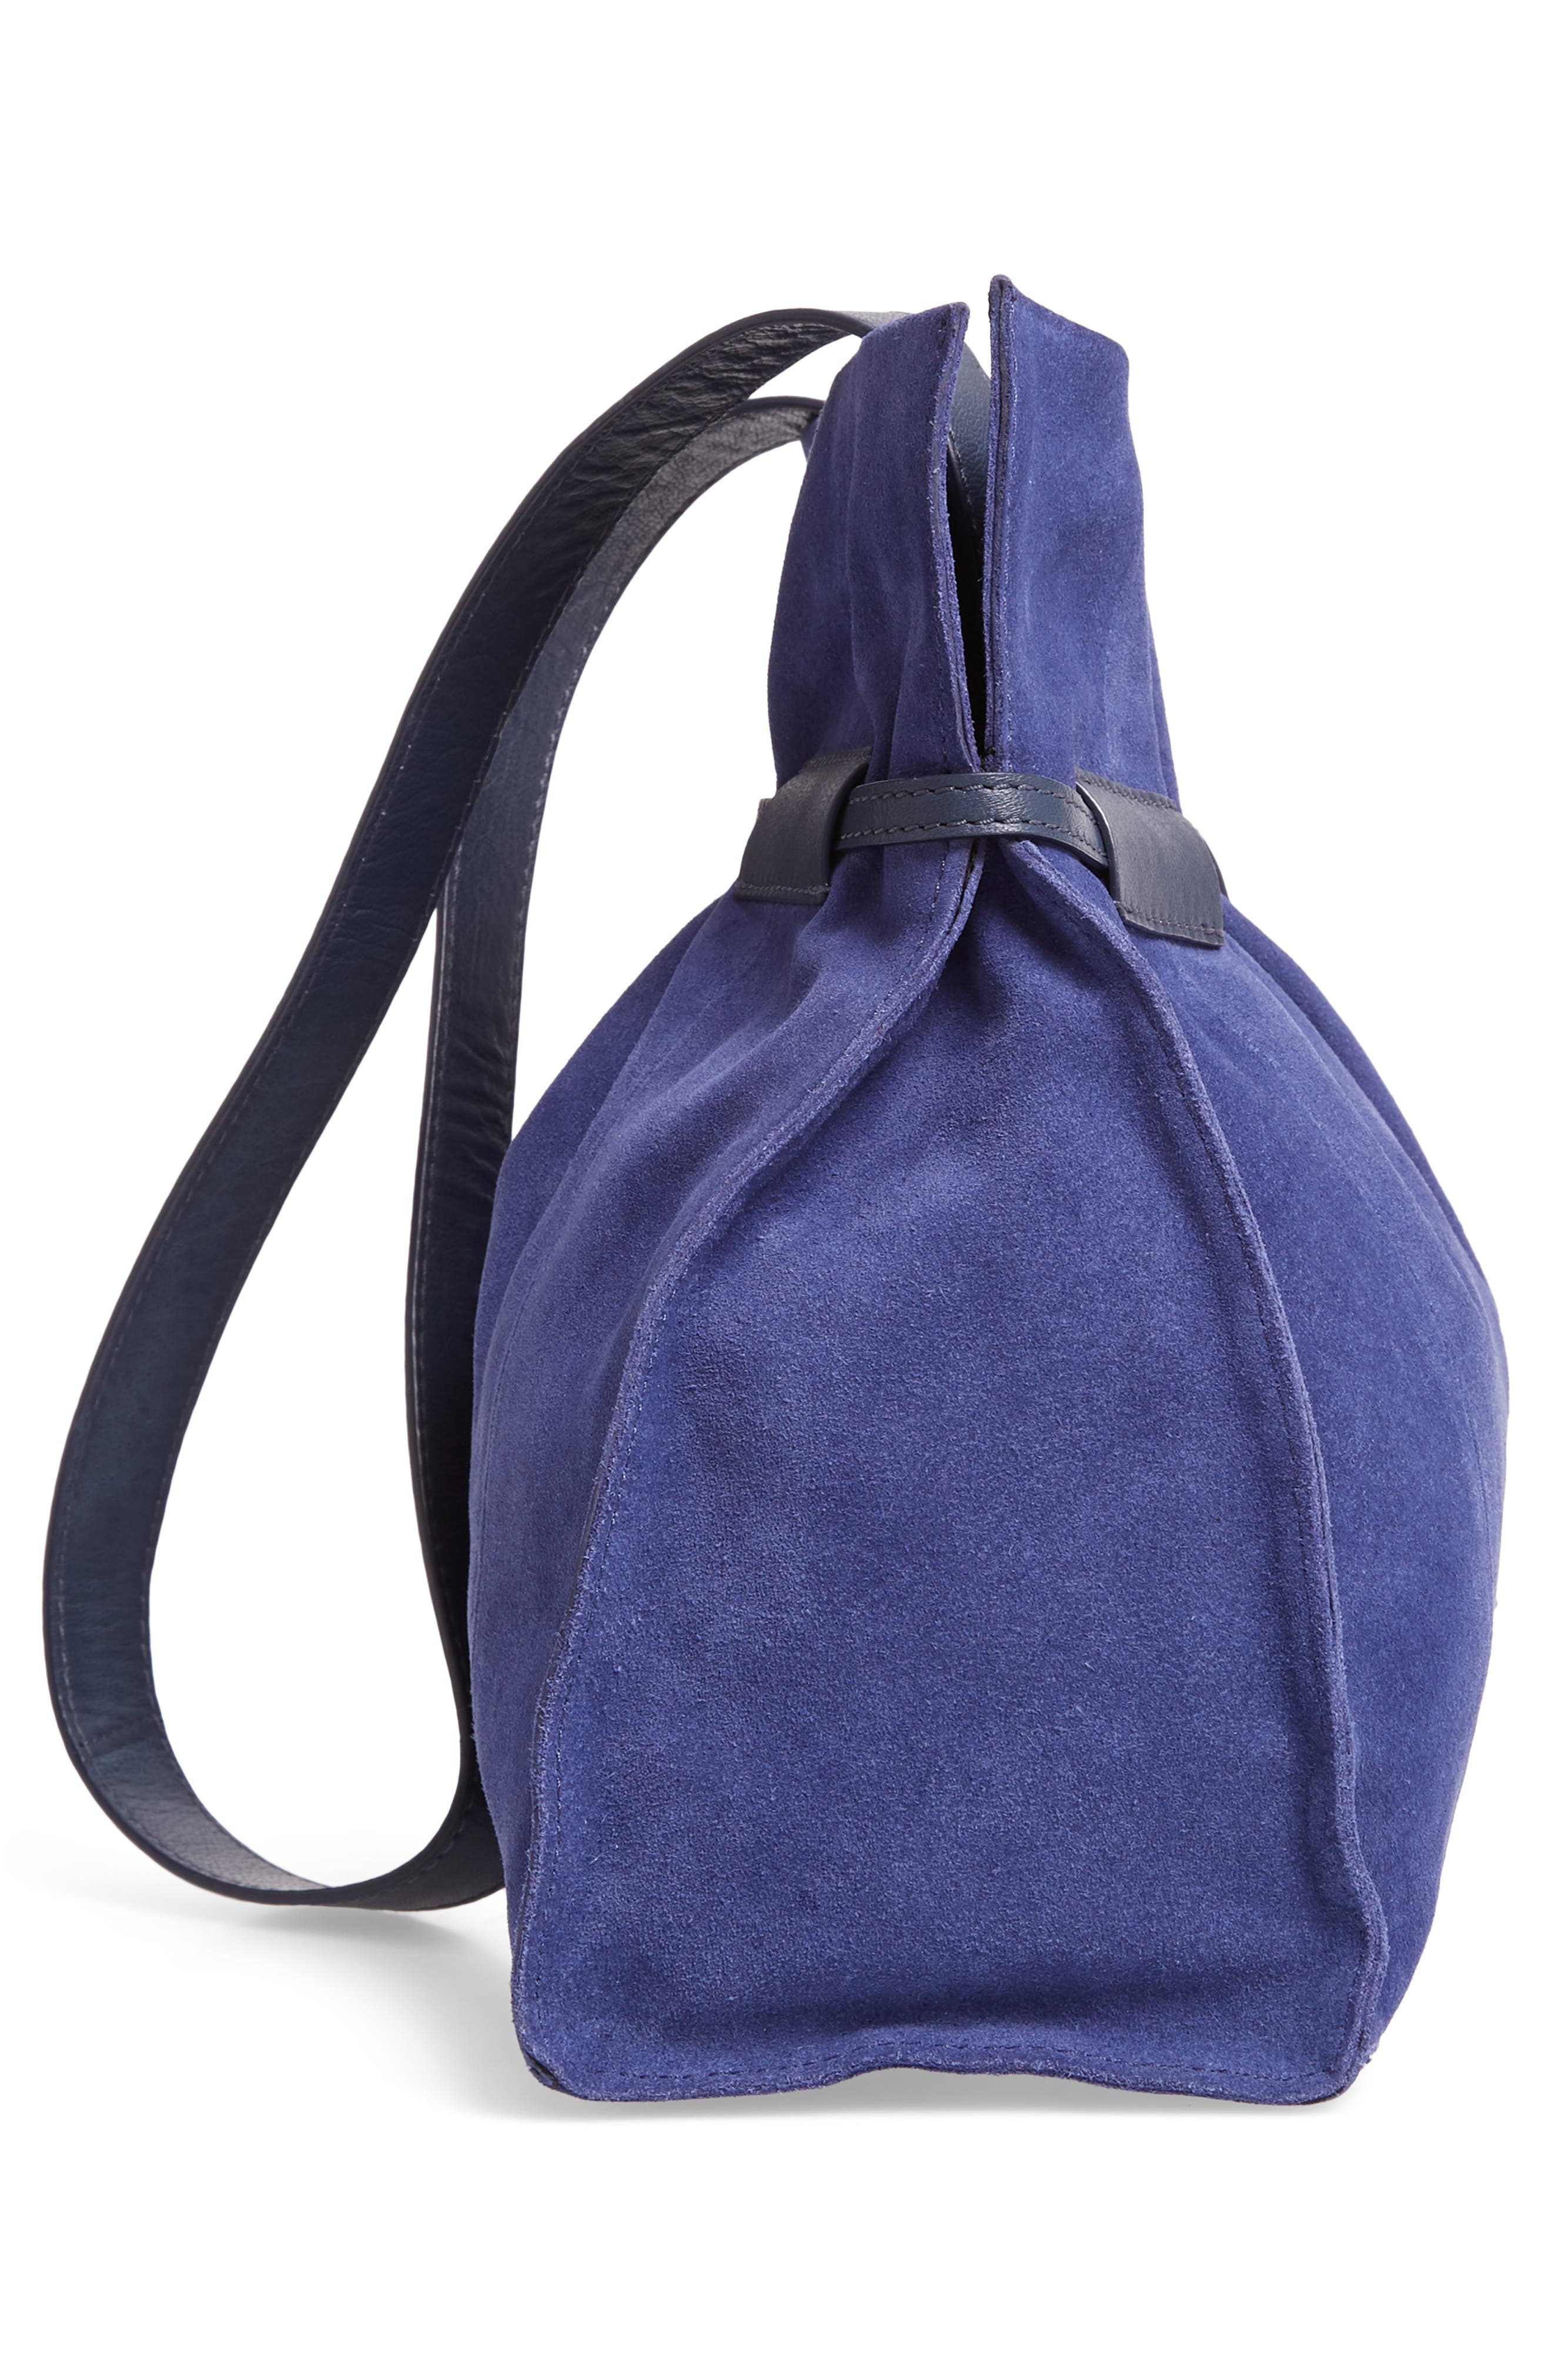 Pull String Faux Leather Bucket Bag,                             Alternate thumbnail 5, color,                             400